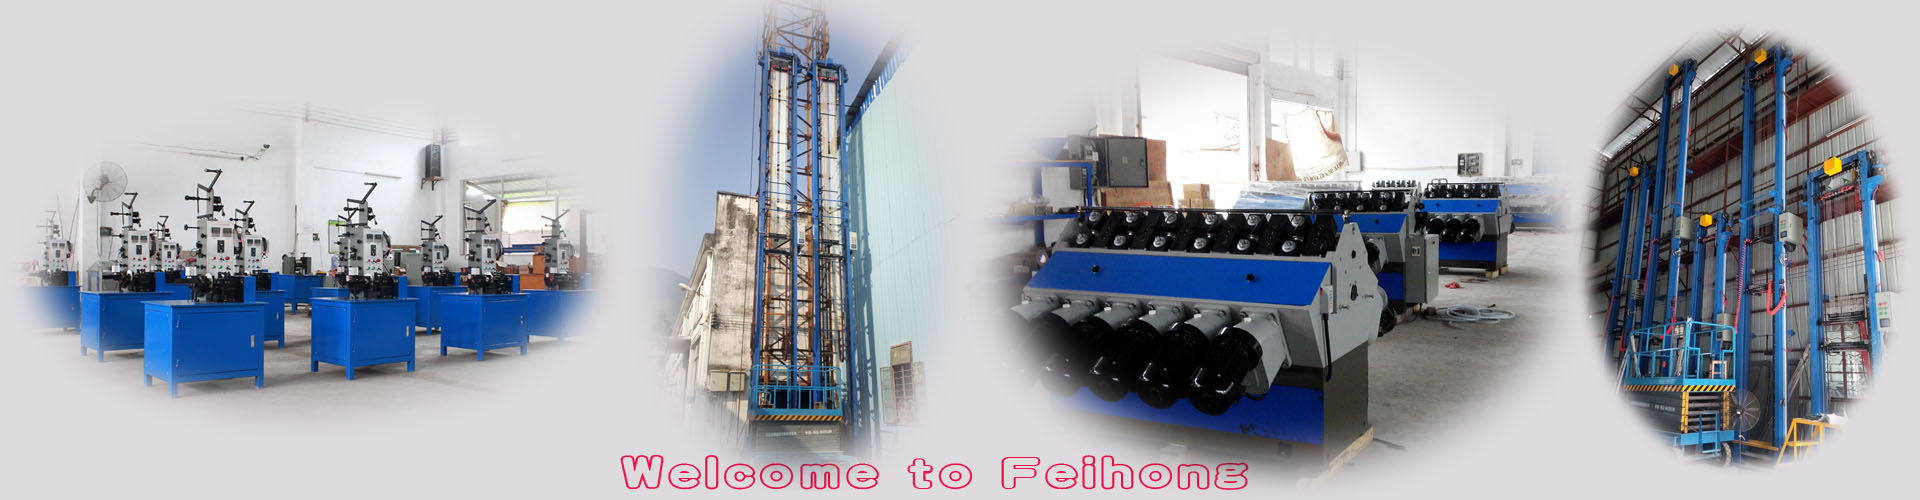 Welcome to Feihong